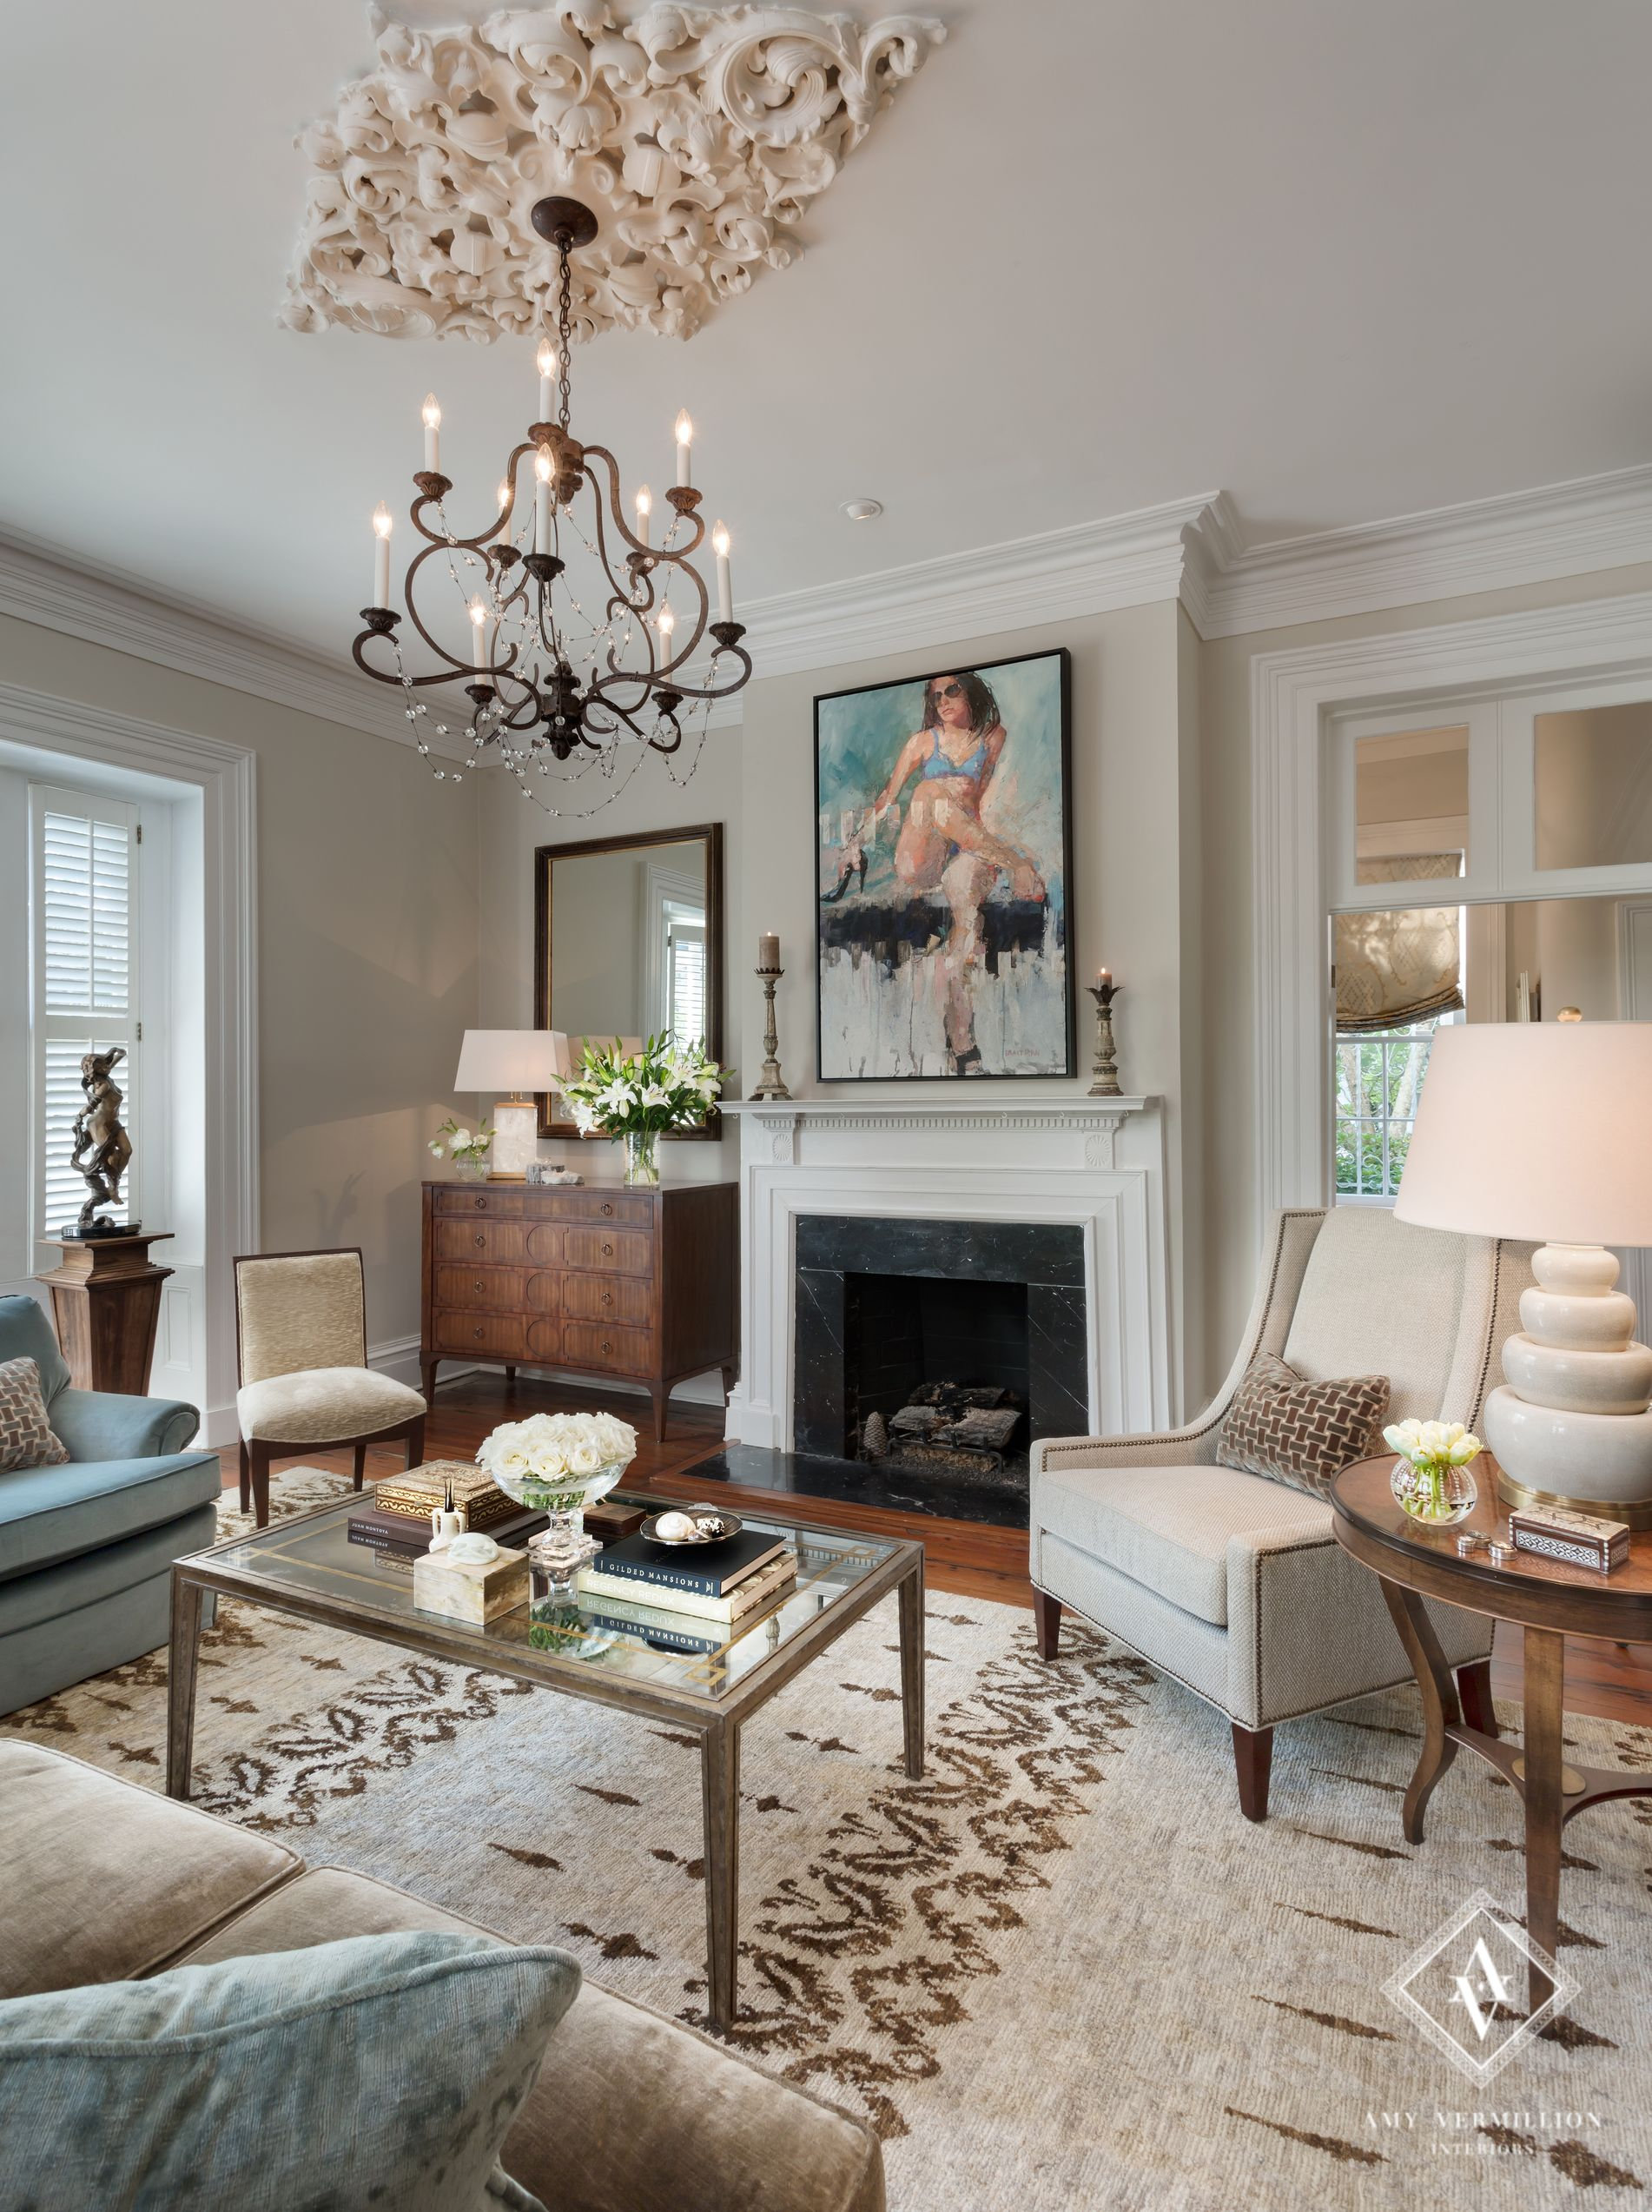 Room Design Interior: C.1857 Historic Home- Charleston Battery By Amy Vermillion